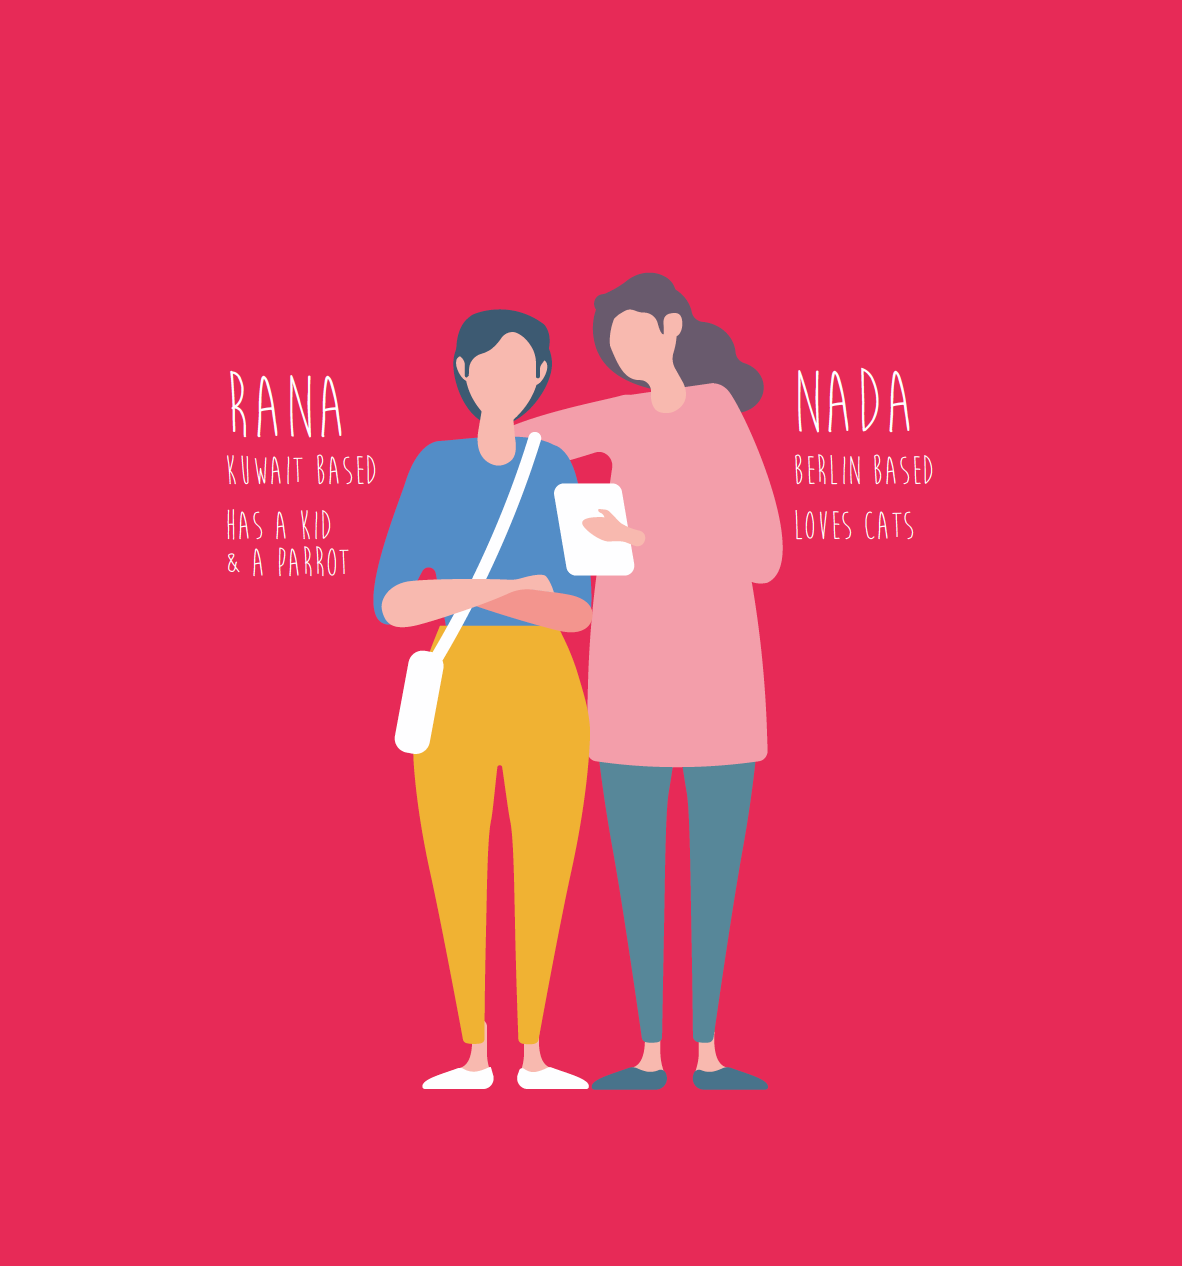 ABOUT US - We are a designers collective based in Berlin, Cairo & Kuwait led by two senior designer Rana & Nada. We specialize in branding, social media content creation & animation. We serve a diverse group of clients in different fields.